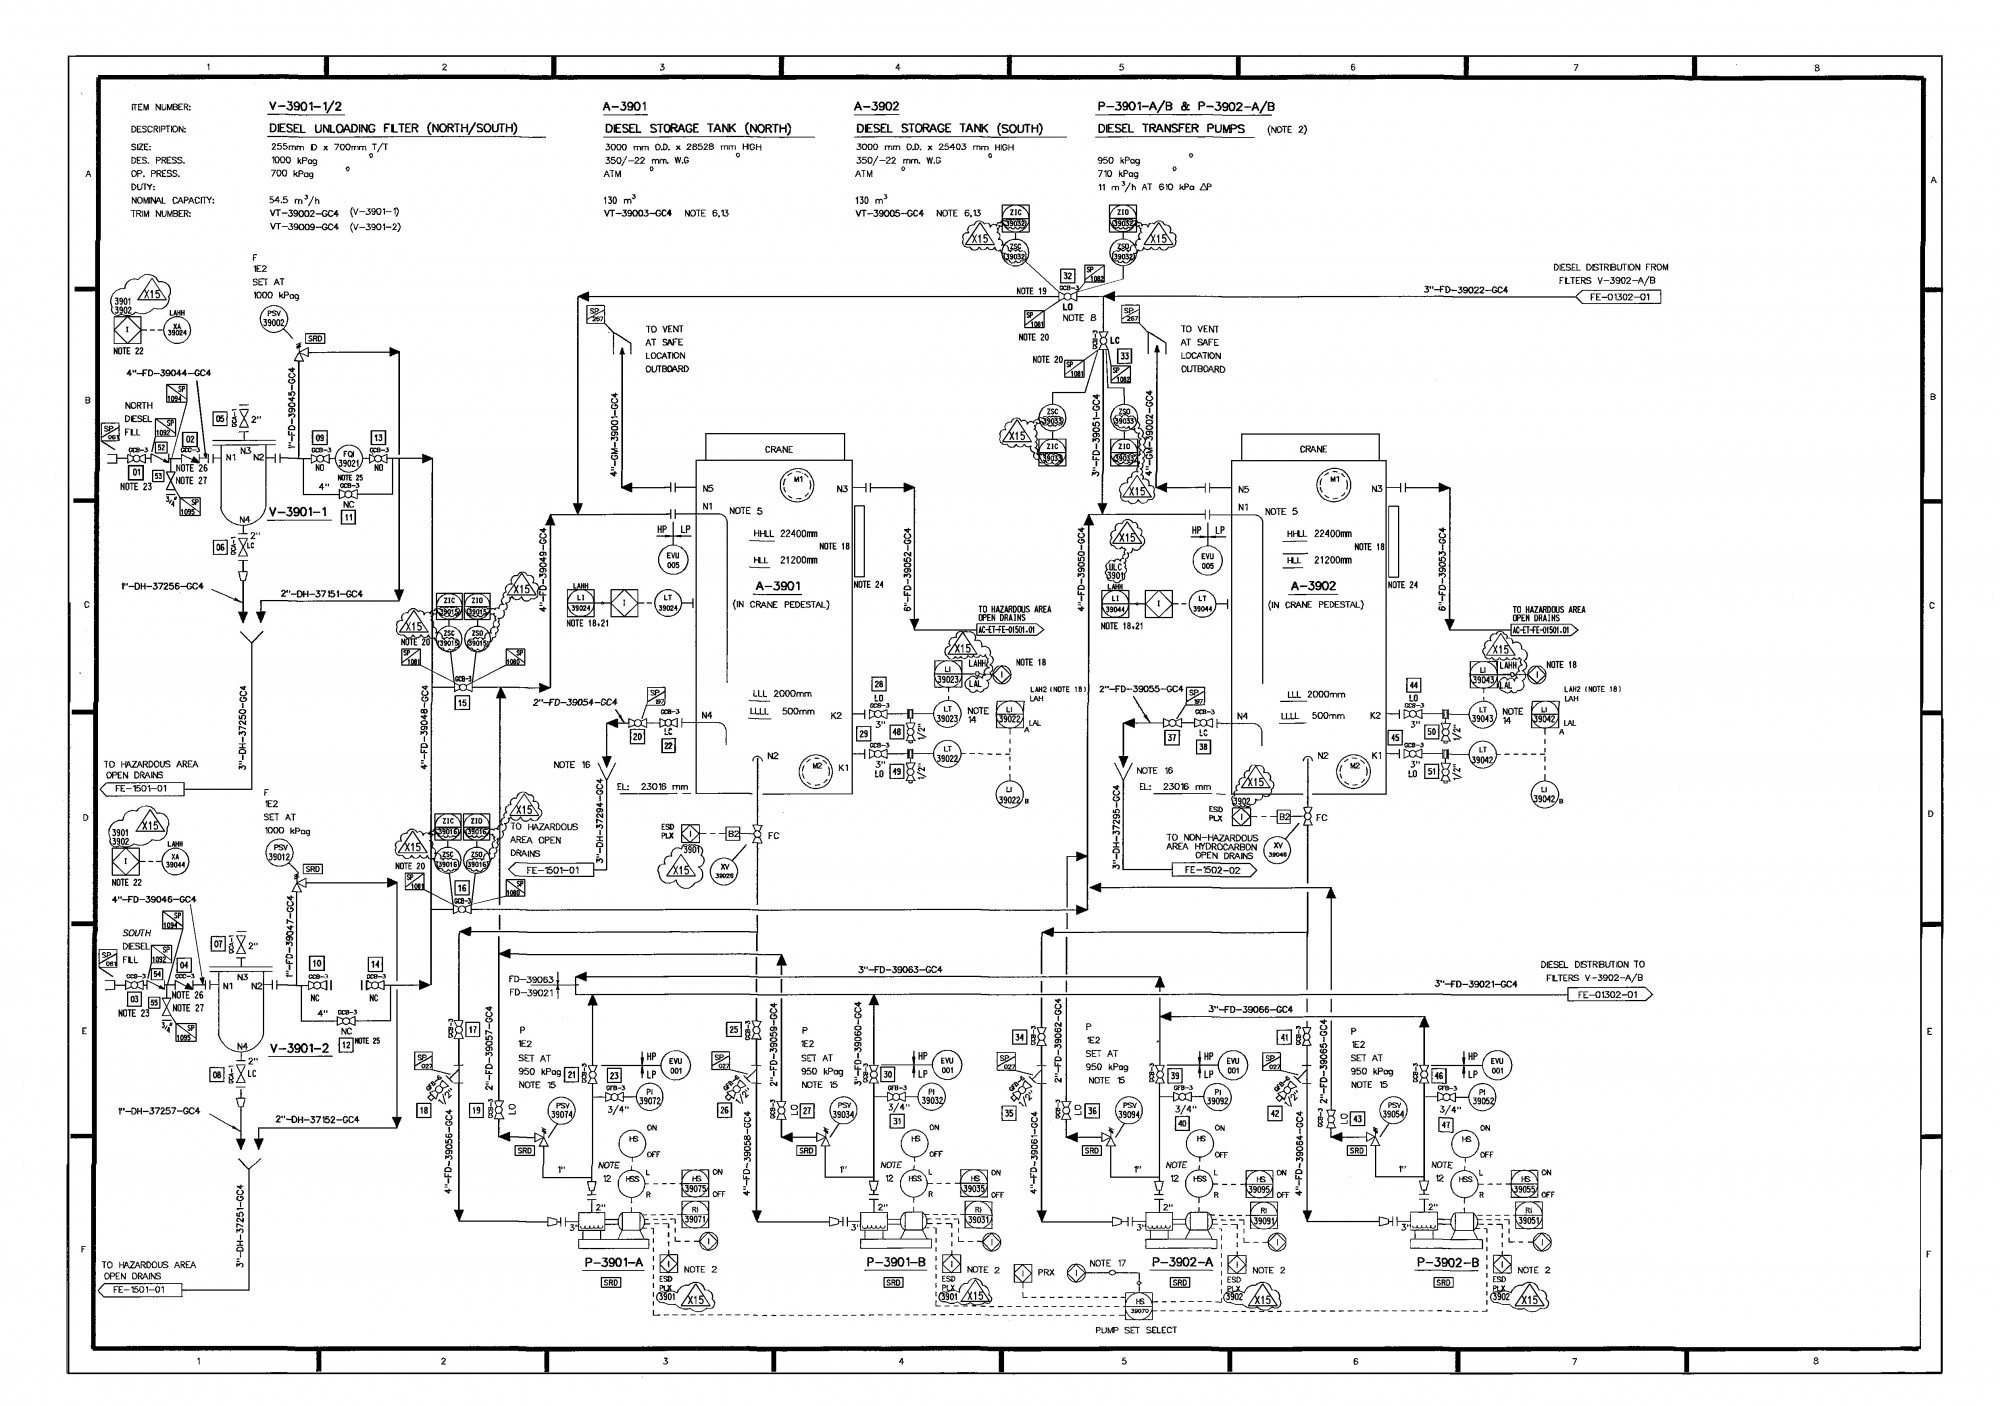 Electrical Power Plant Schematic